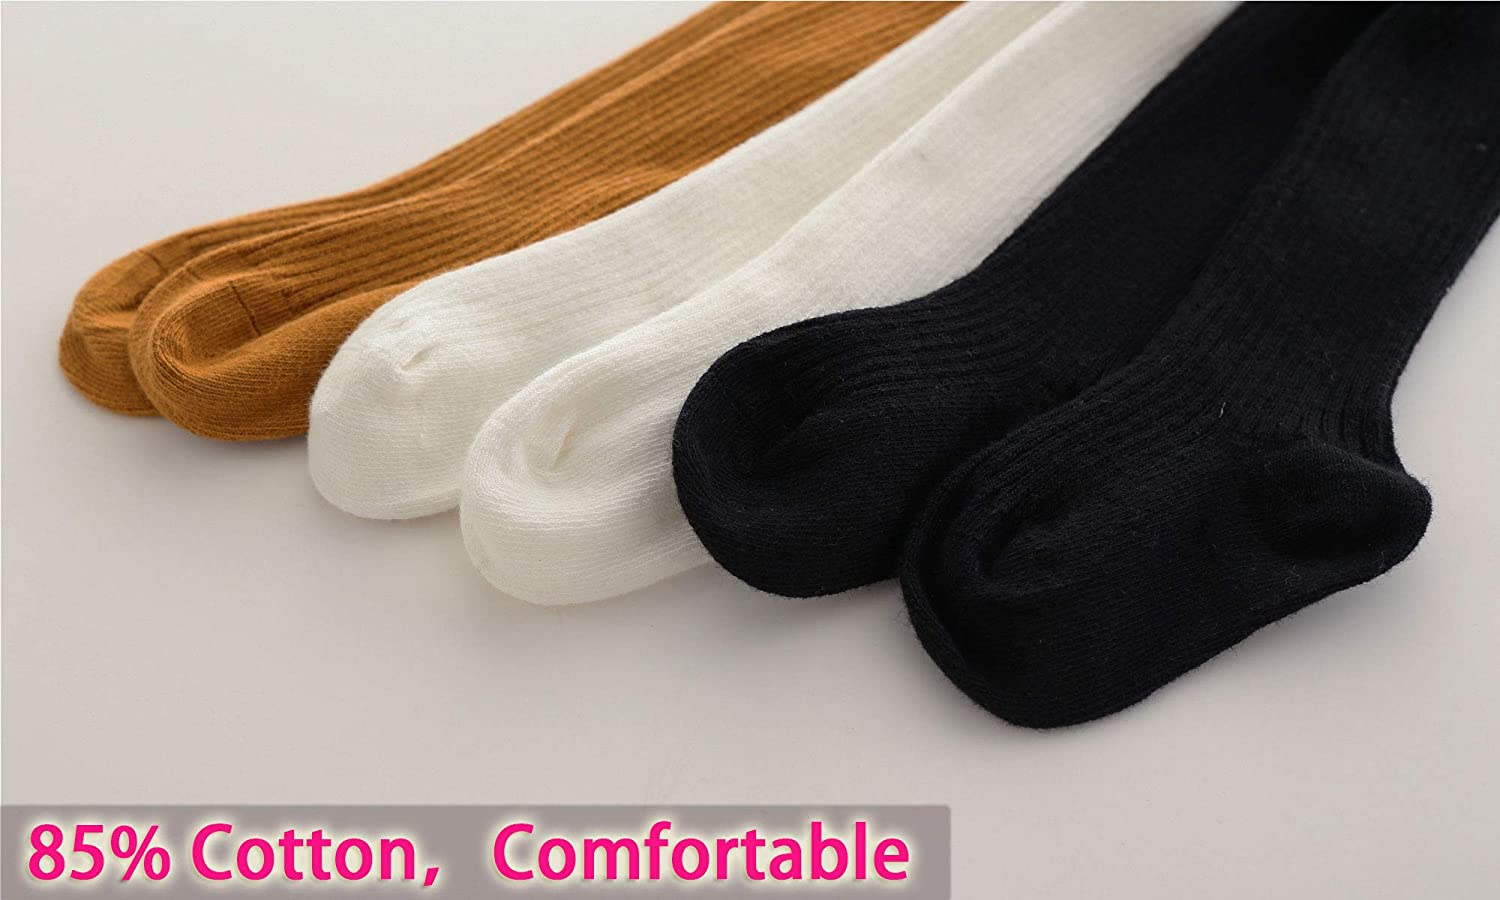 CECORC Baby Tights Thick Toddlers Girl Leggings Cable Knit Cotton Stockings